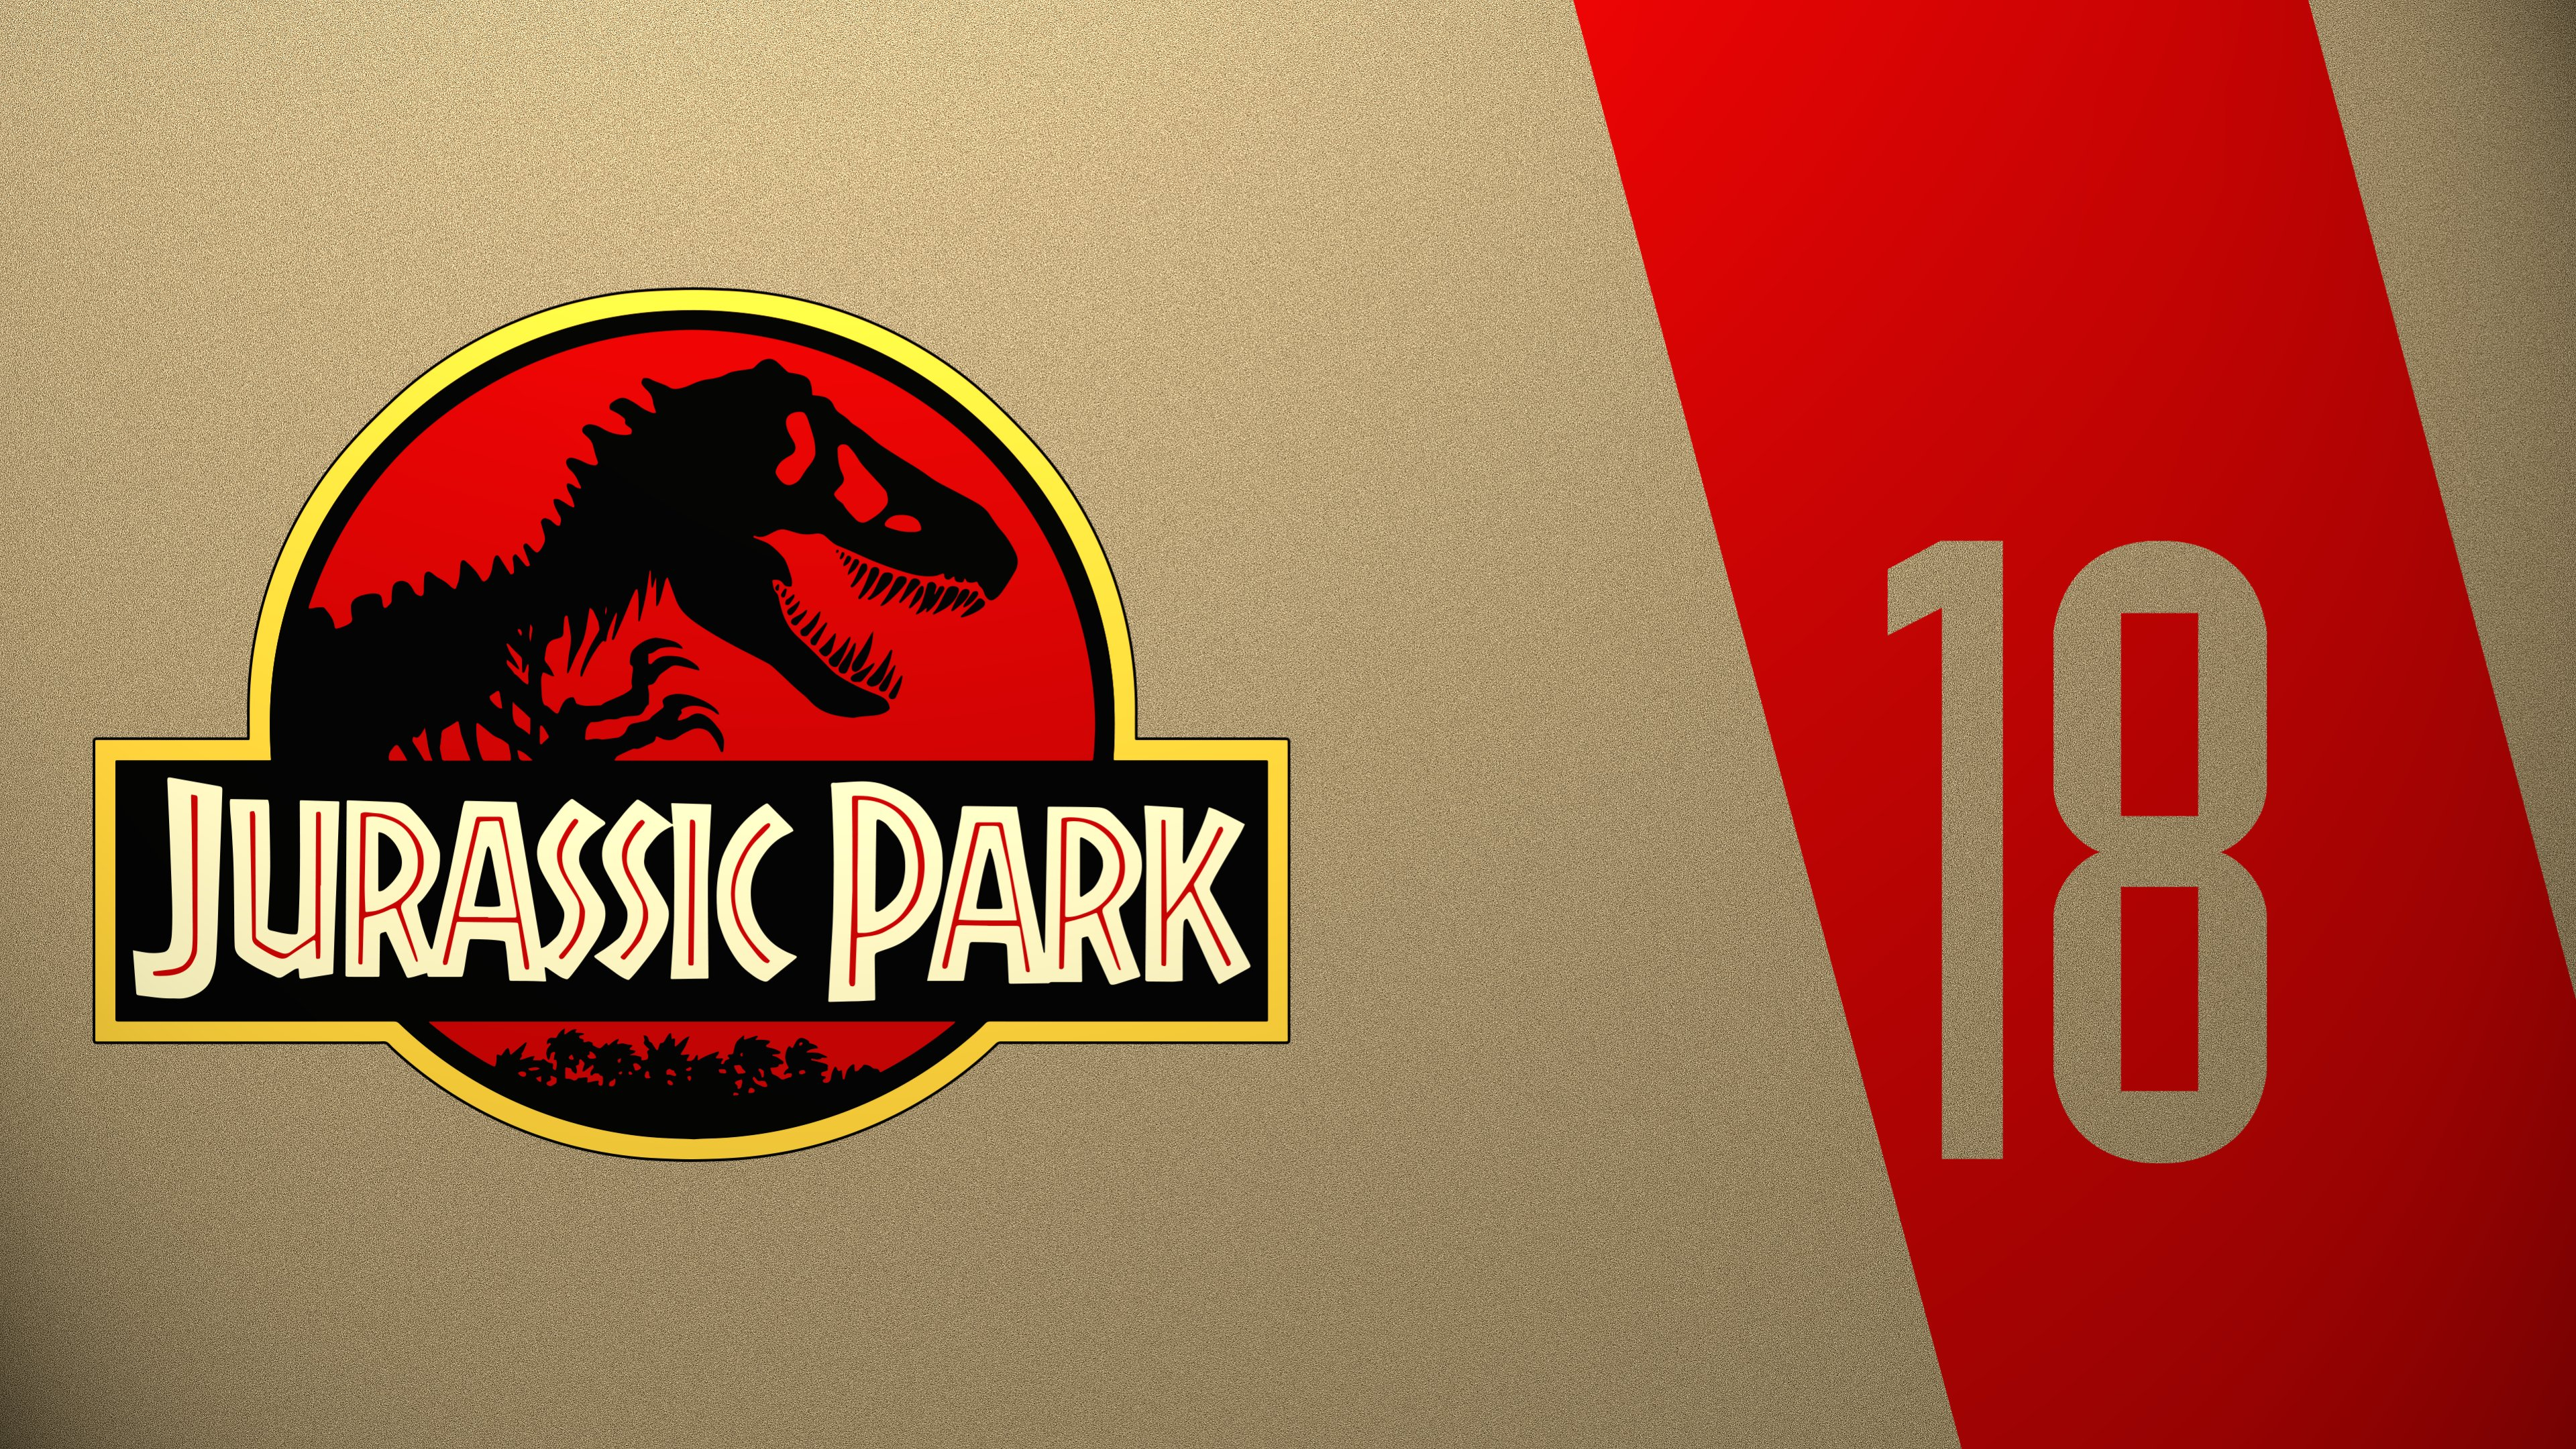 Jurassic Park Jeep wallpaper